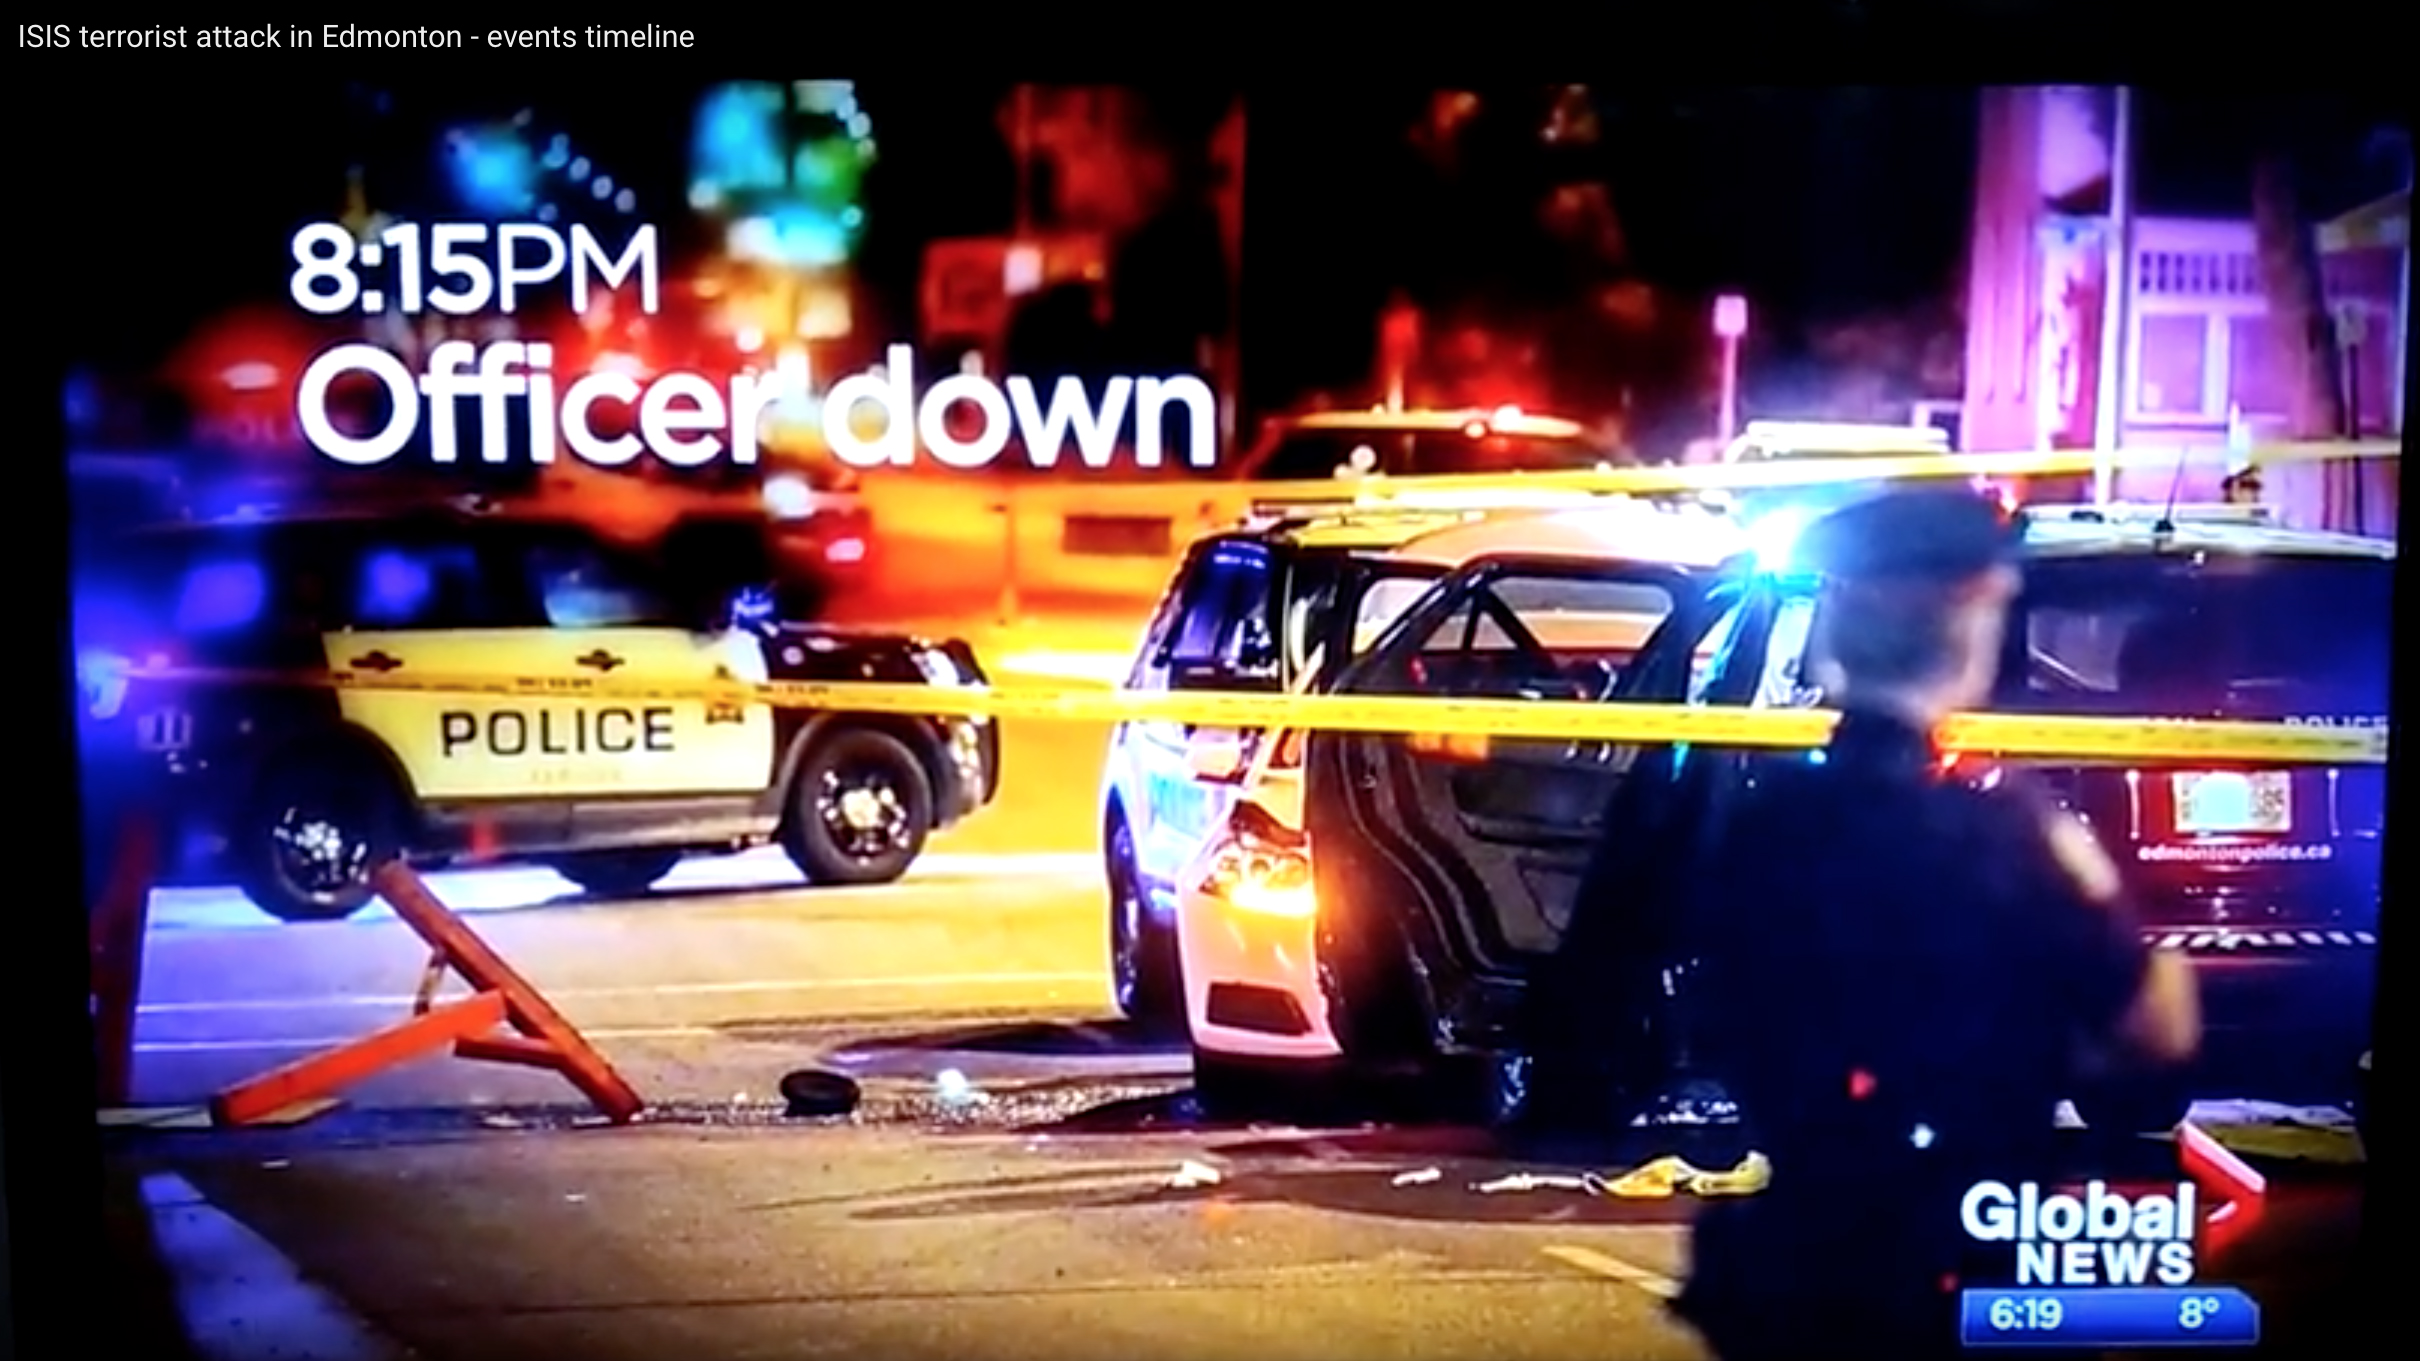 ": A screen shot from Global News coverage following the stabbing of an Edmonton police officer. The accused, a Somali refugee, could also face terrorism-related charges after the vehicle he was driving plowed through pedestrians following a high-speed police chase. But labelling every senseless act of mass violence as ""terrorism"" makes it far more difficult to address the root causes."